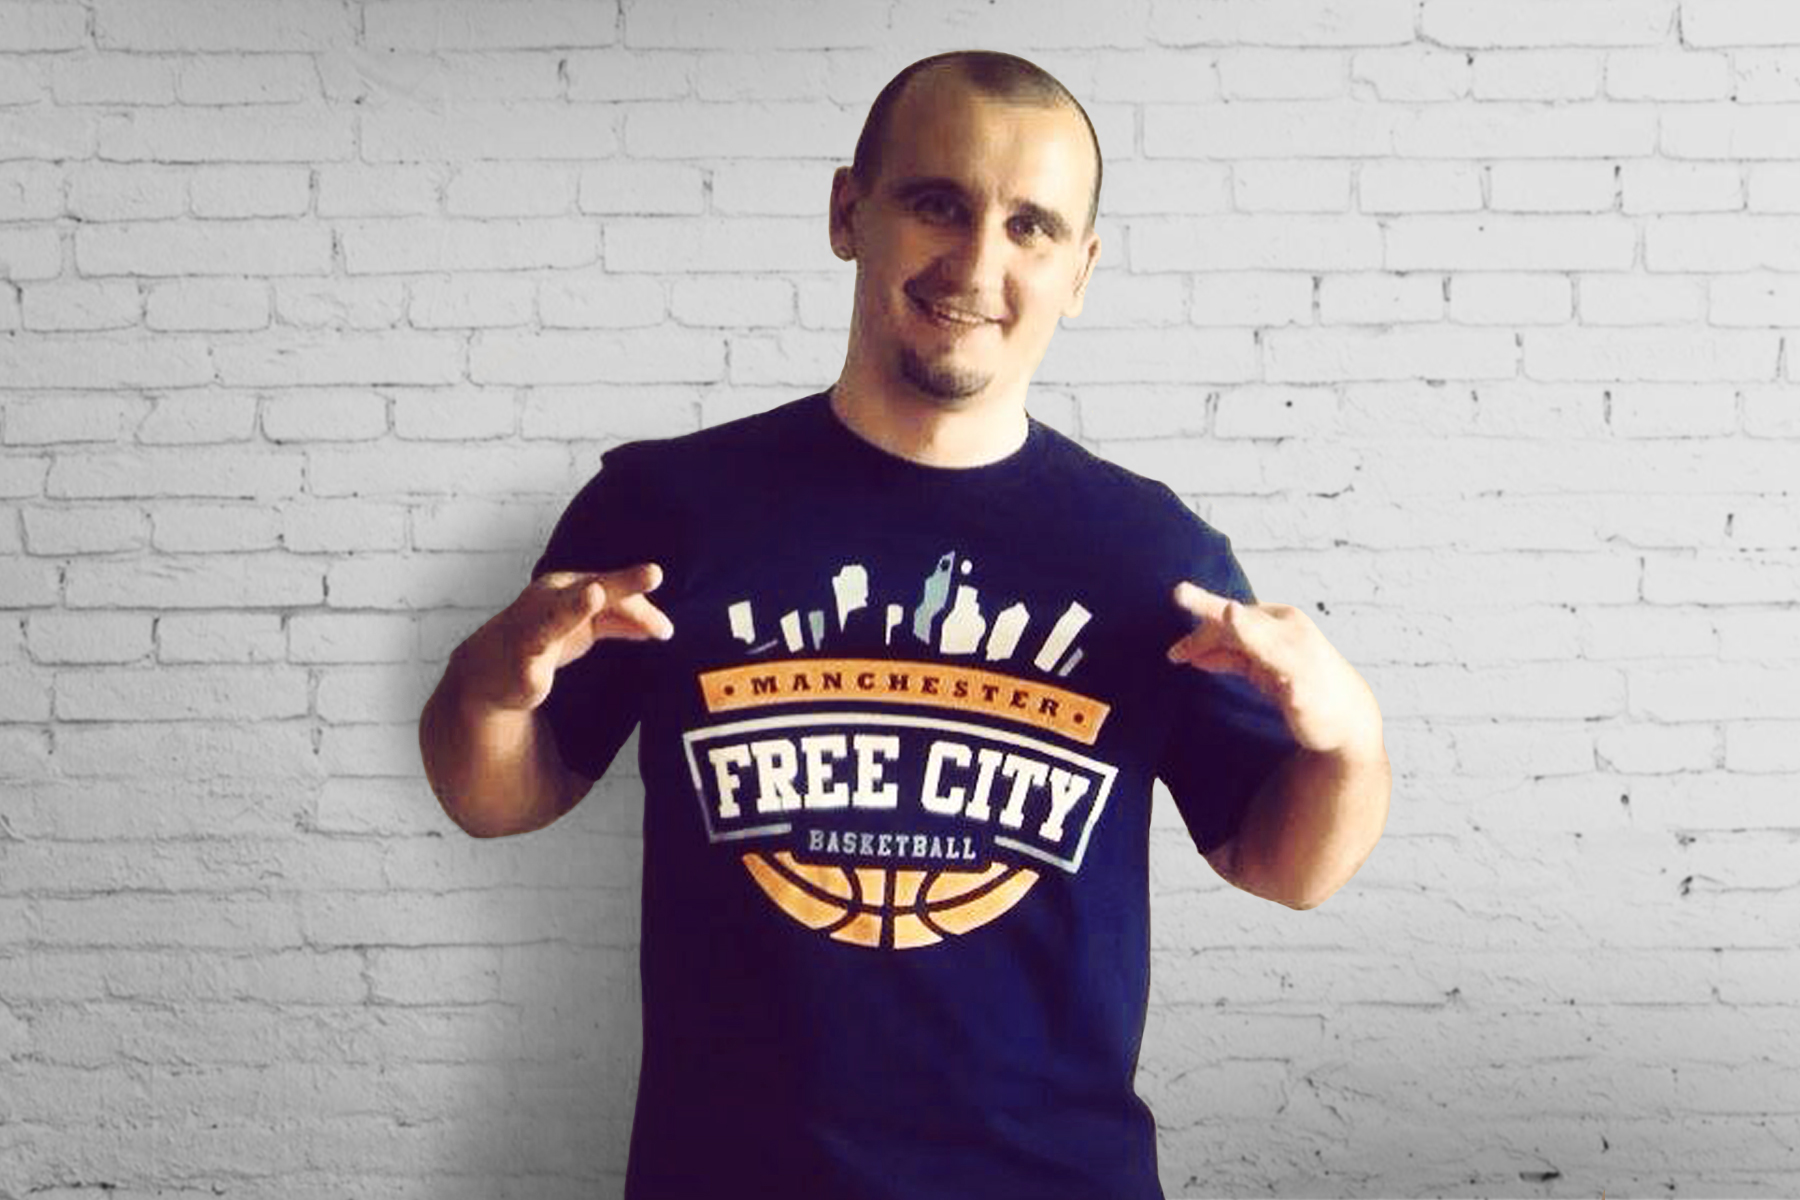 FreeCity basketball fan